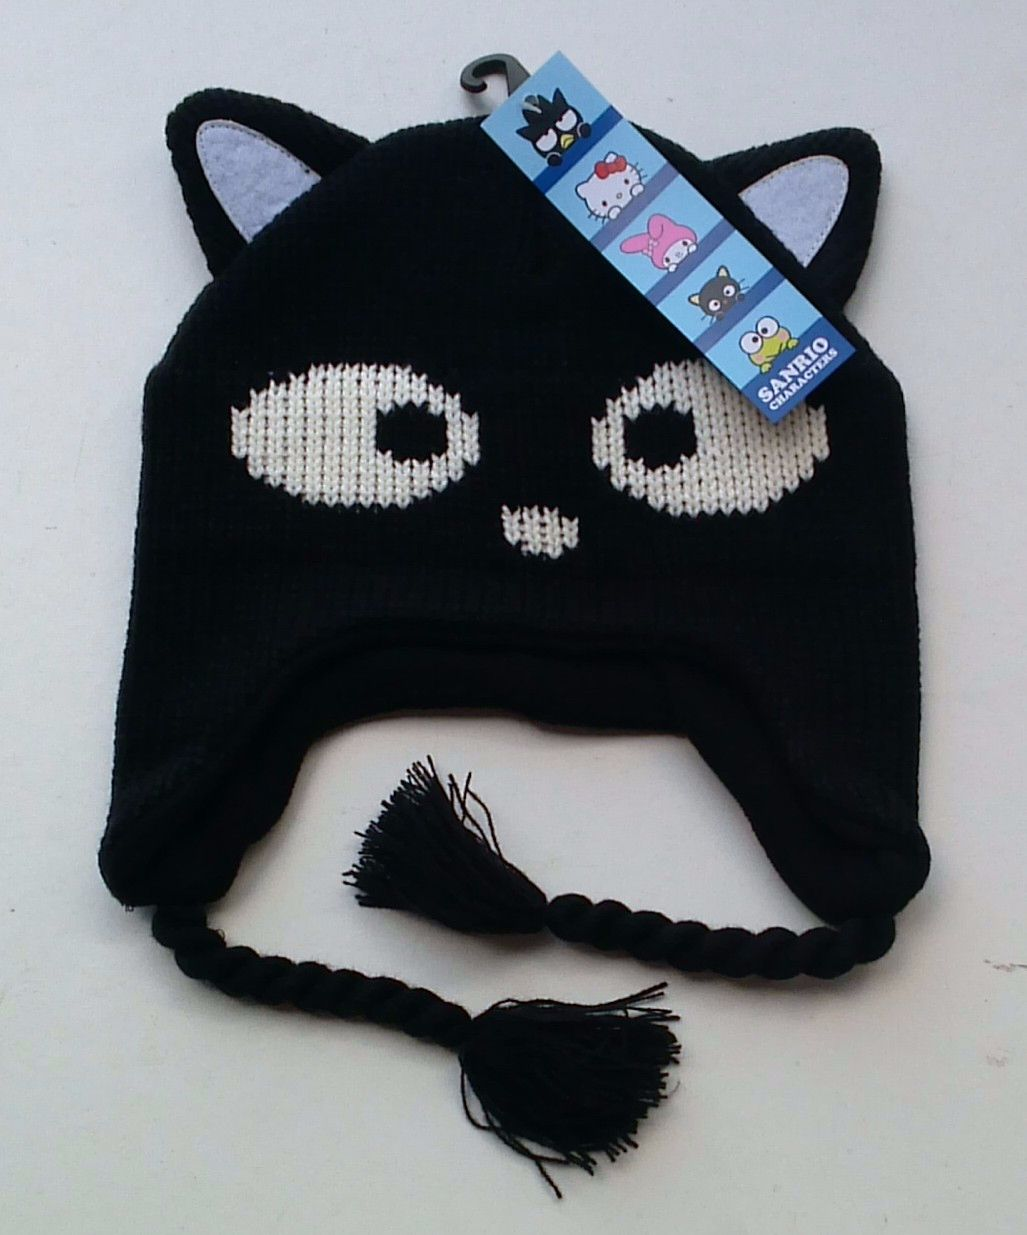 Knitted Black Cat Inca Hat for Girls - 12 Hats Per Lot Purchased